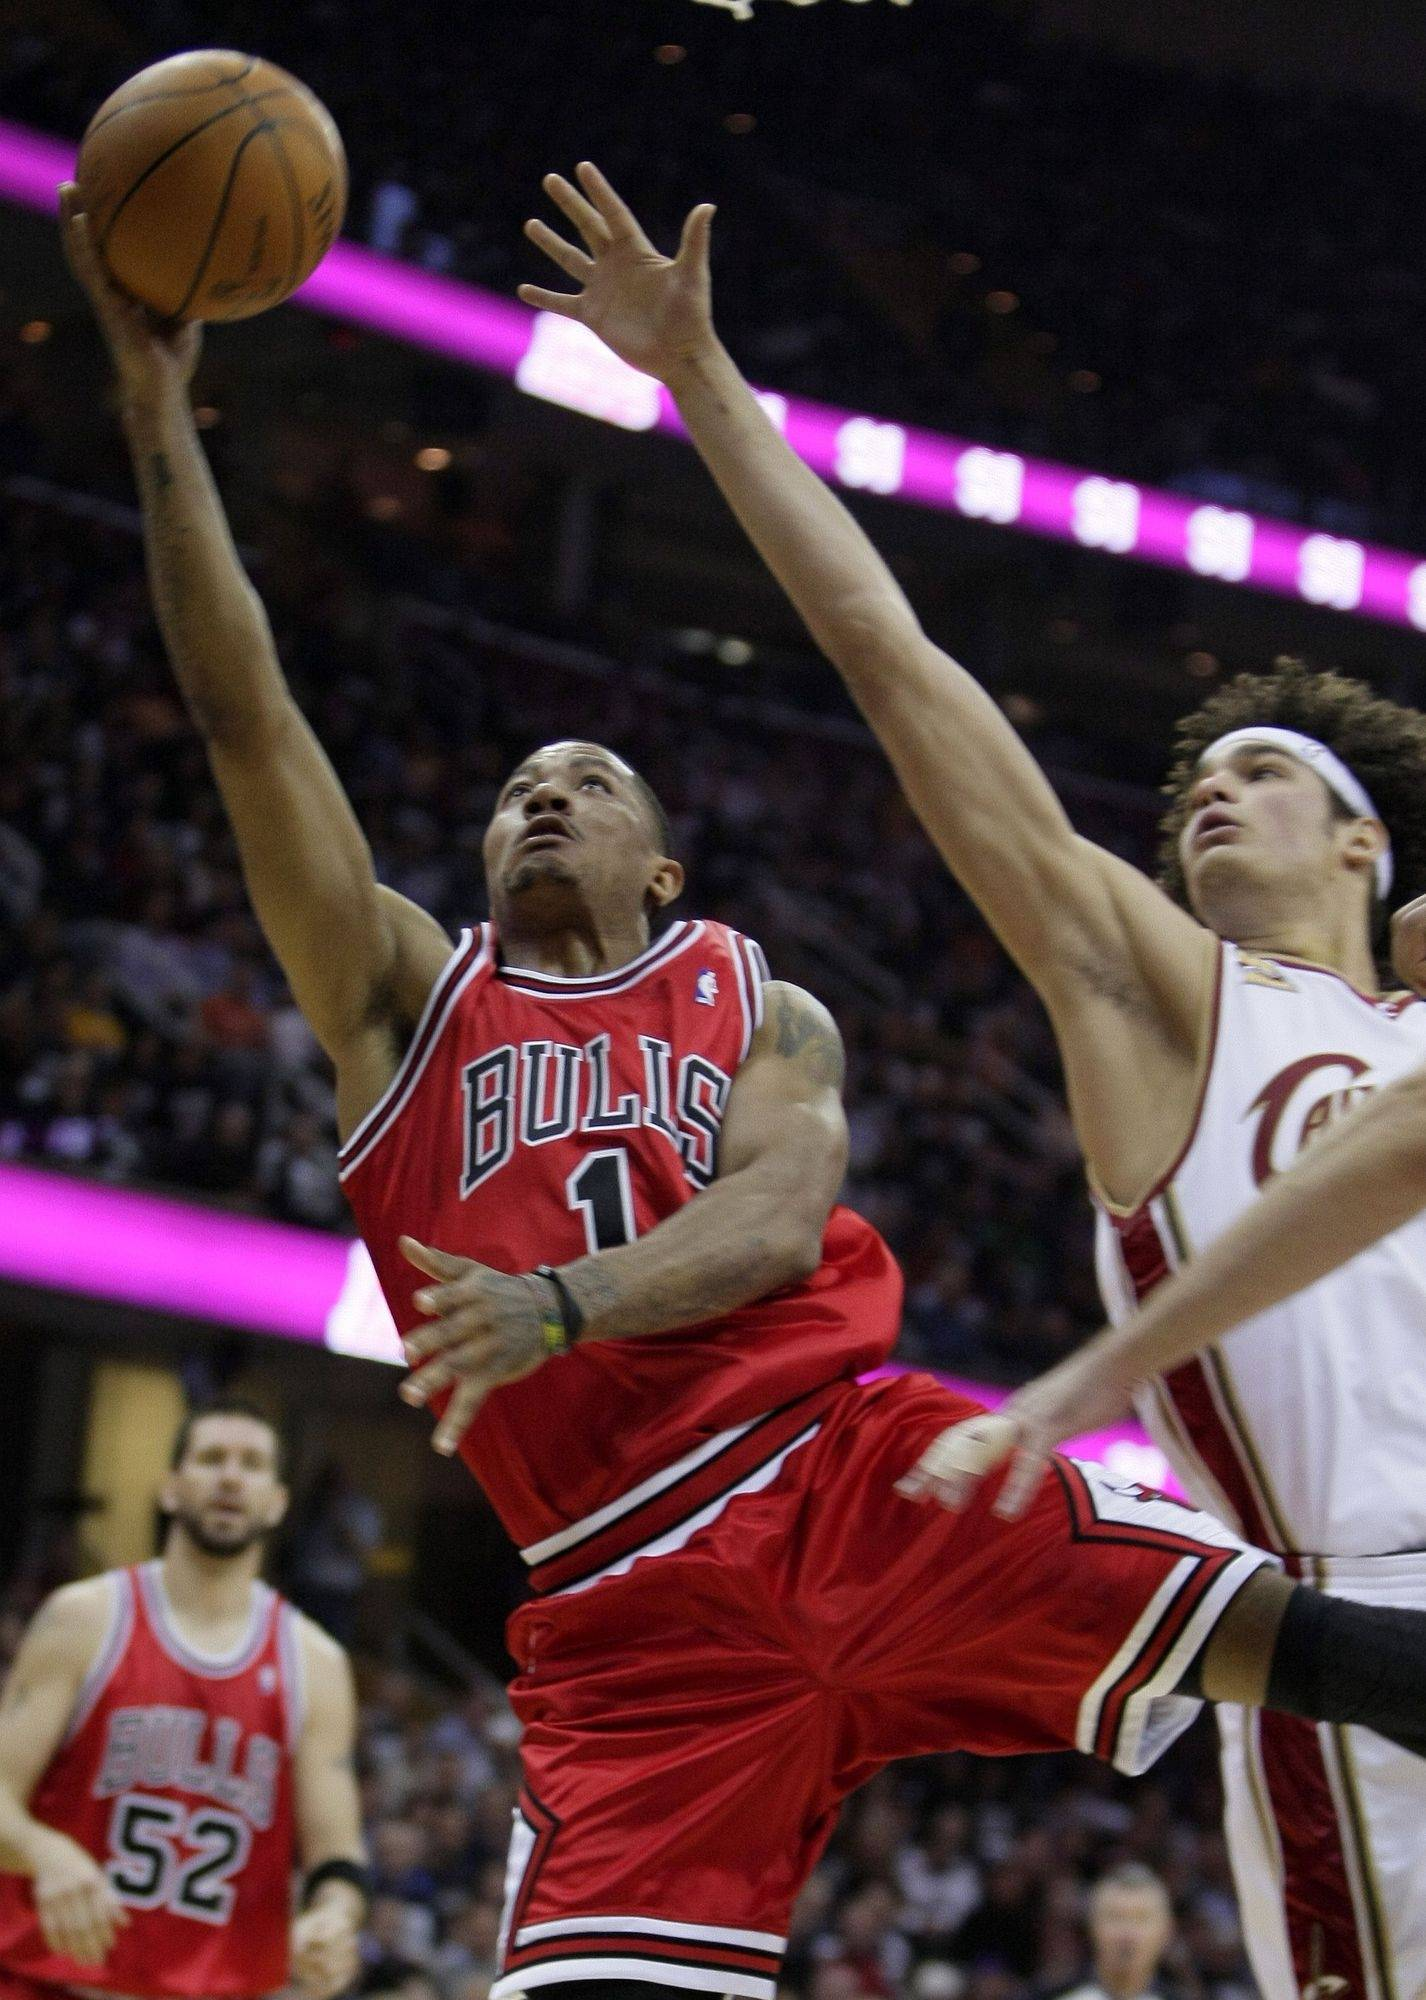 Derrick Rose takes an off-balance shot against Cleveland Cavaliers' Anderson Varejao in the first quarter.